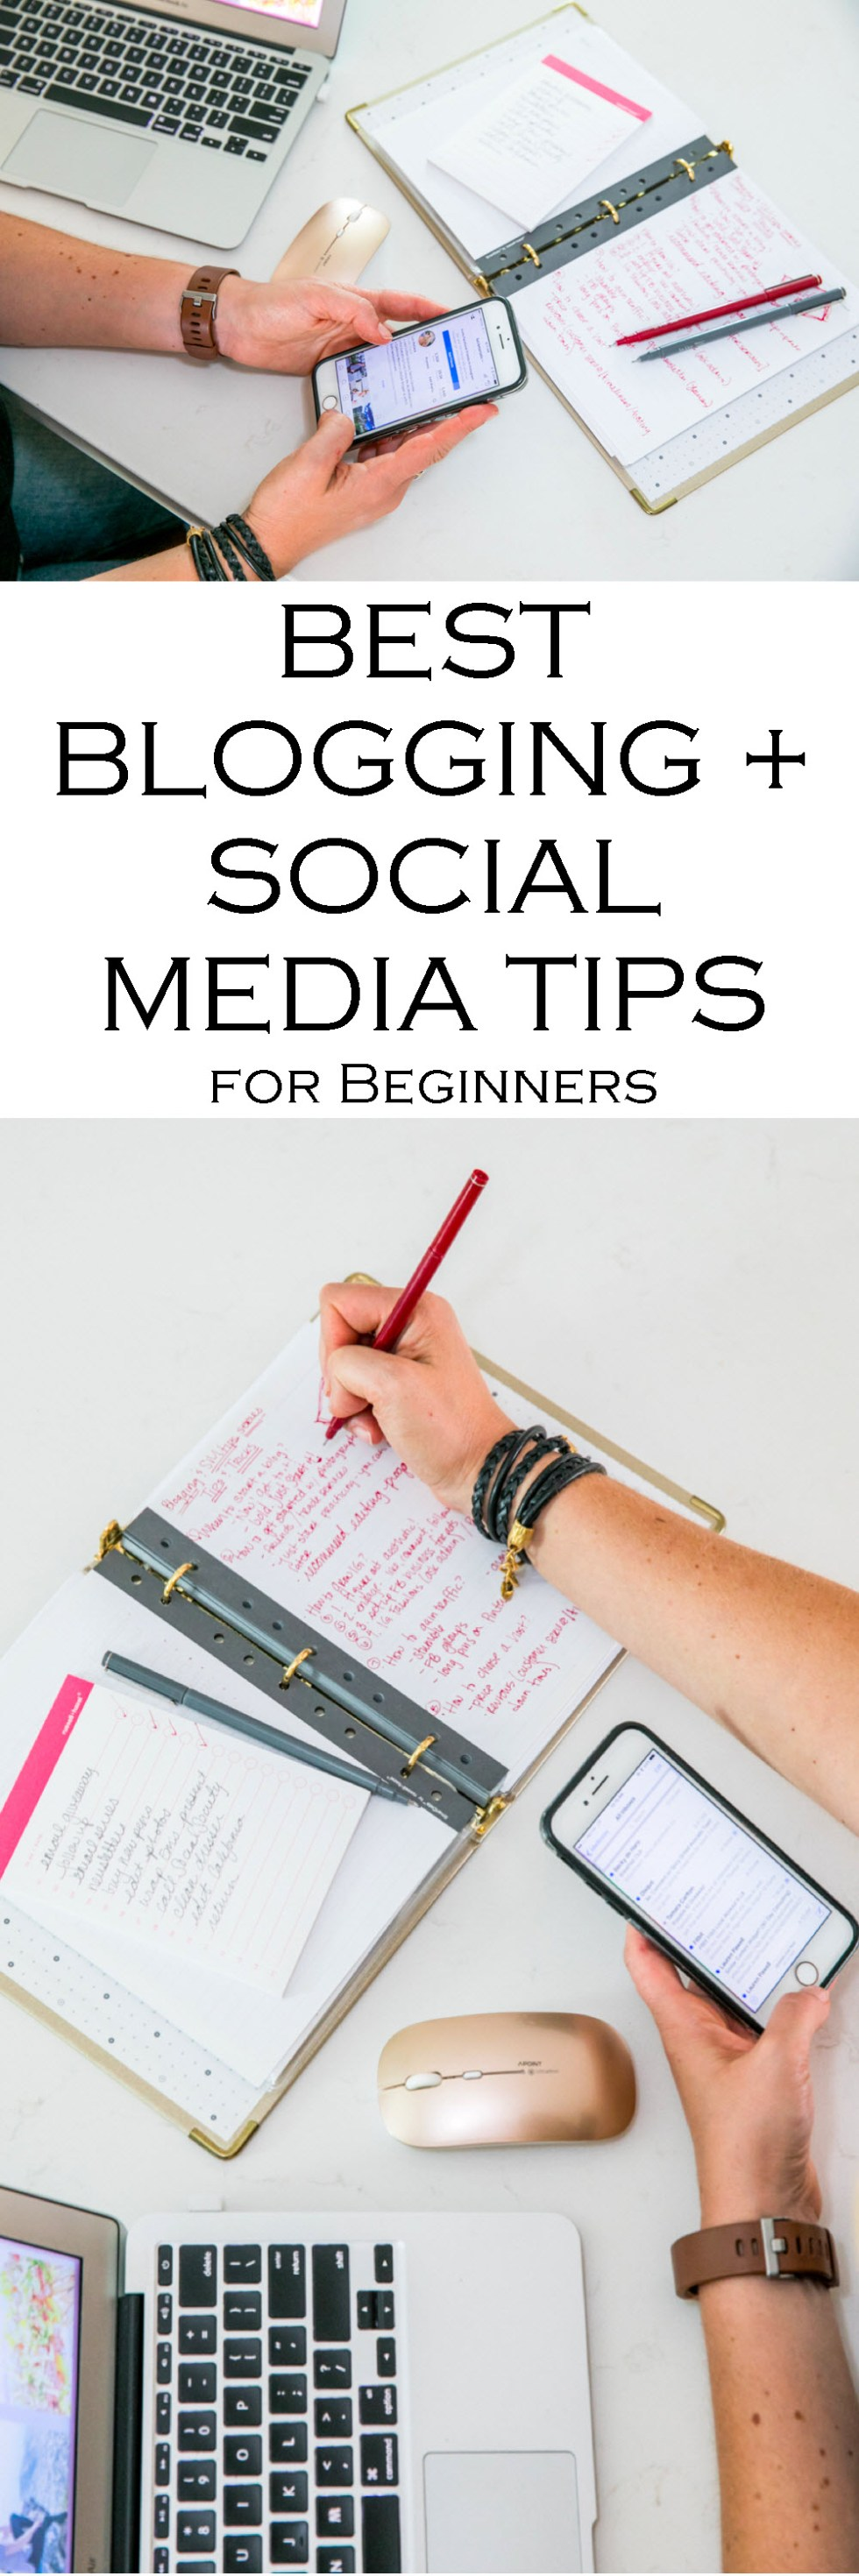 Best Blogging + Social Media Tips Series for New Bloggers and Small Businesses